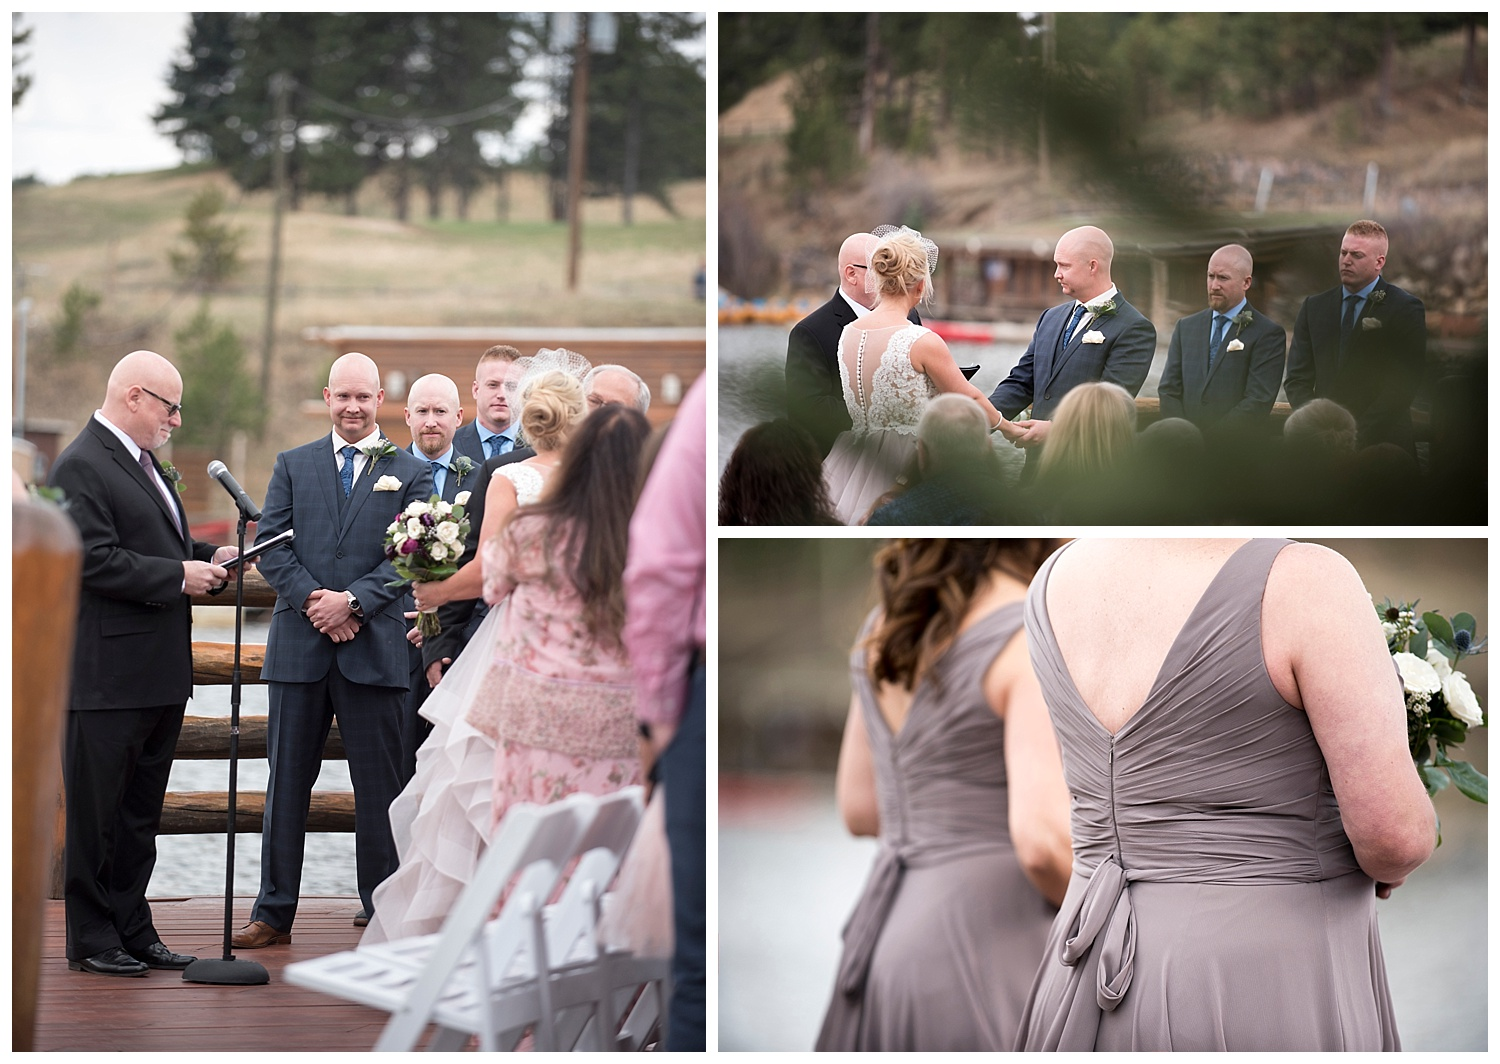 Evergreen_Lake_House_Colorado_Wedding_Photographer_Apollo_Fields_Photography_150.jpg